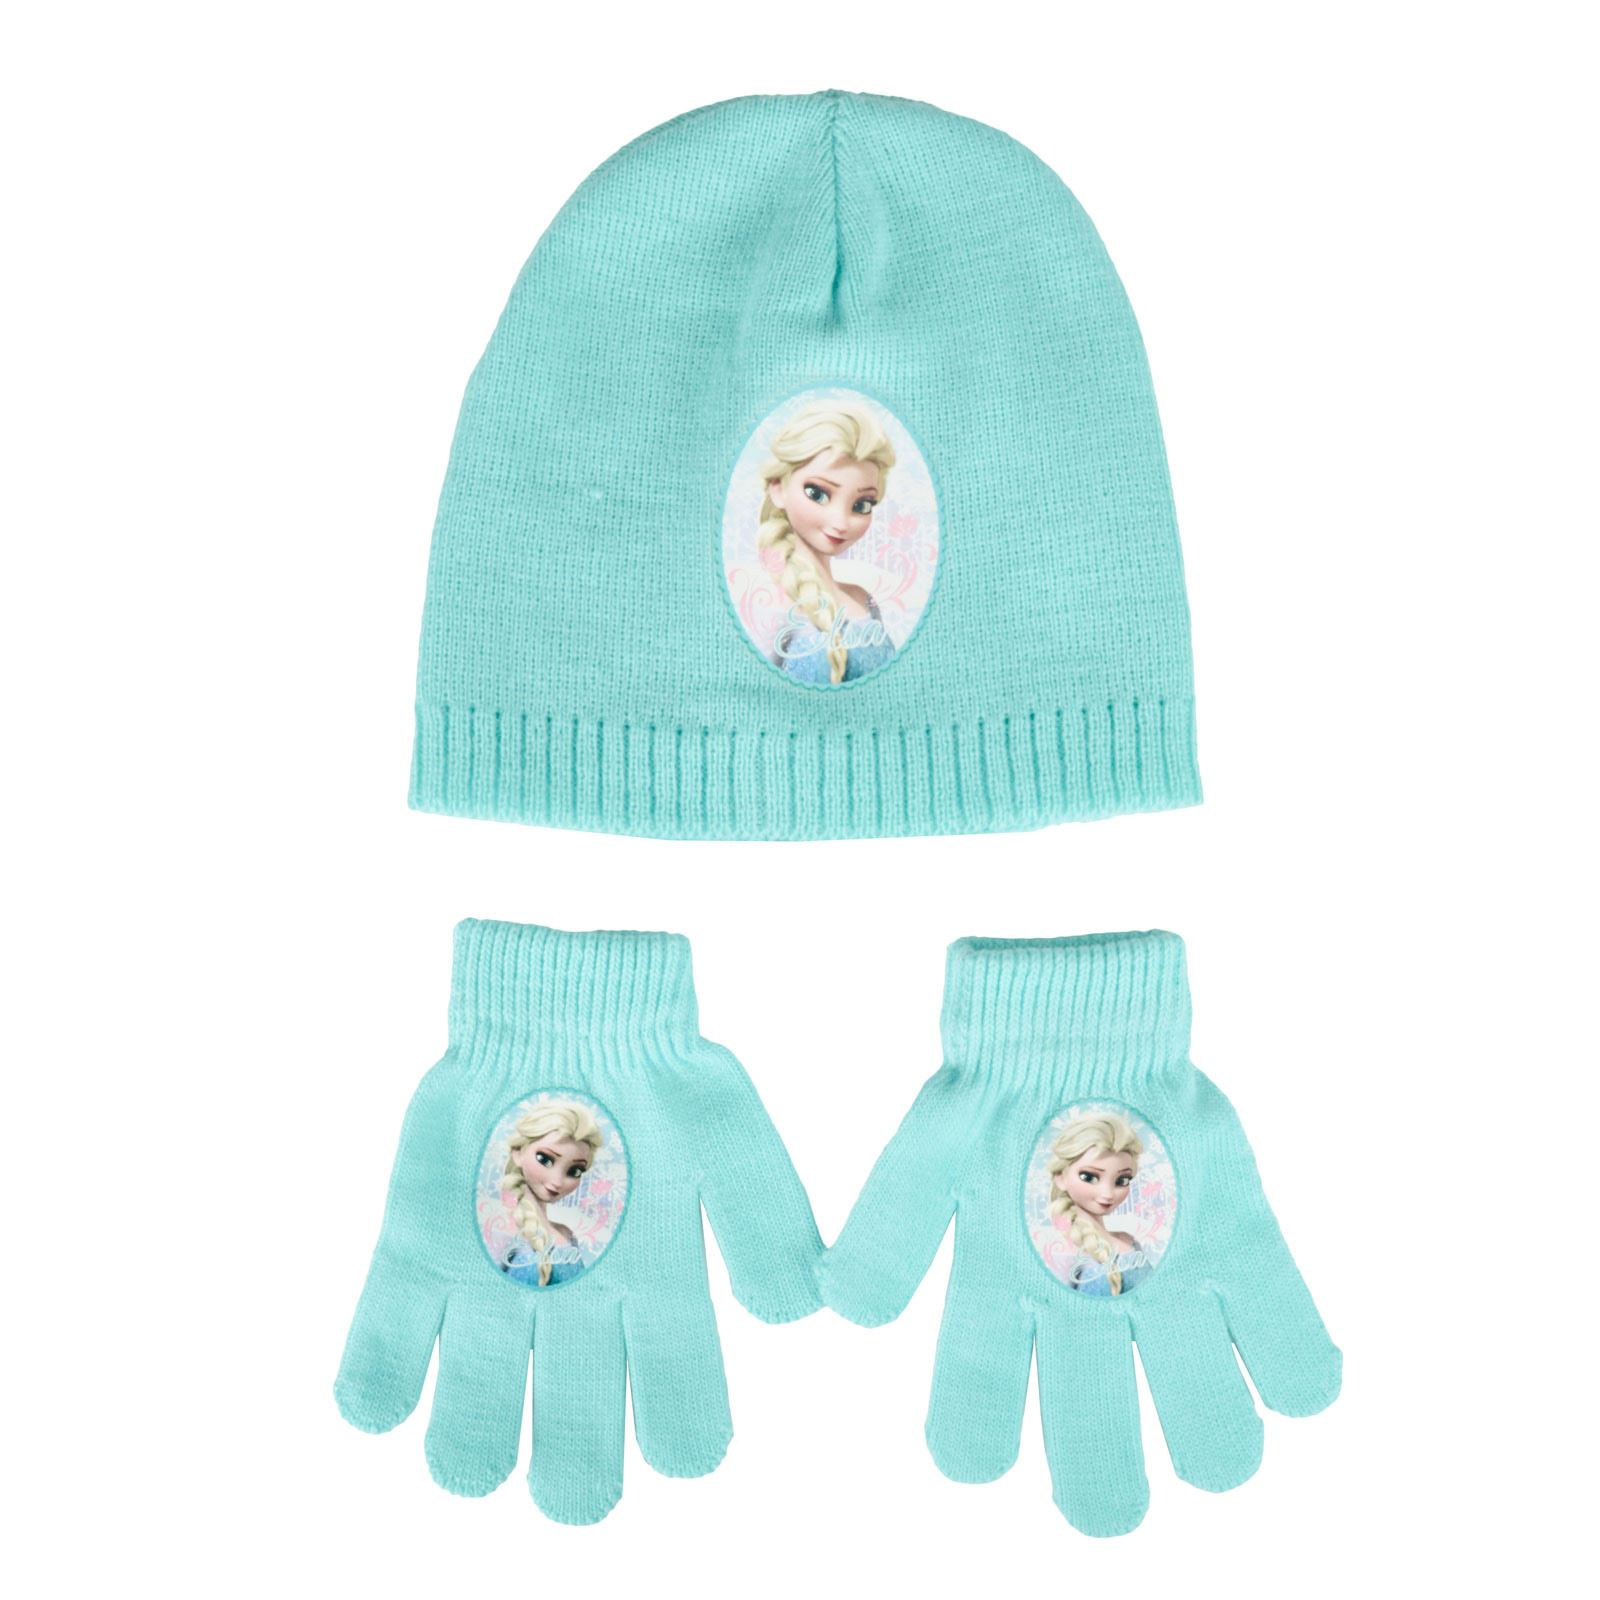 Disney Mickey Mouse Knitted Winter Set Hat Scarf & Gloves Toddlers Boys One Size Puppen Spielzeug